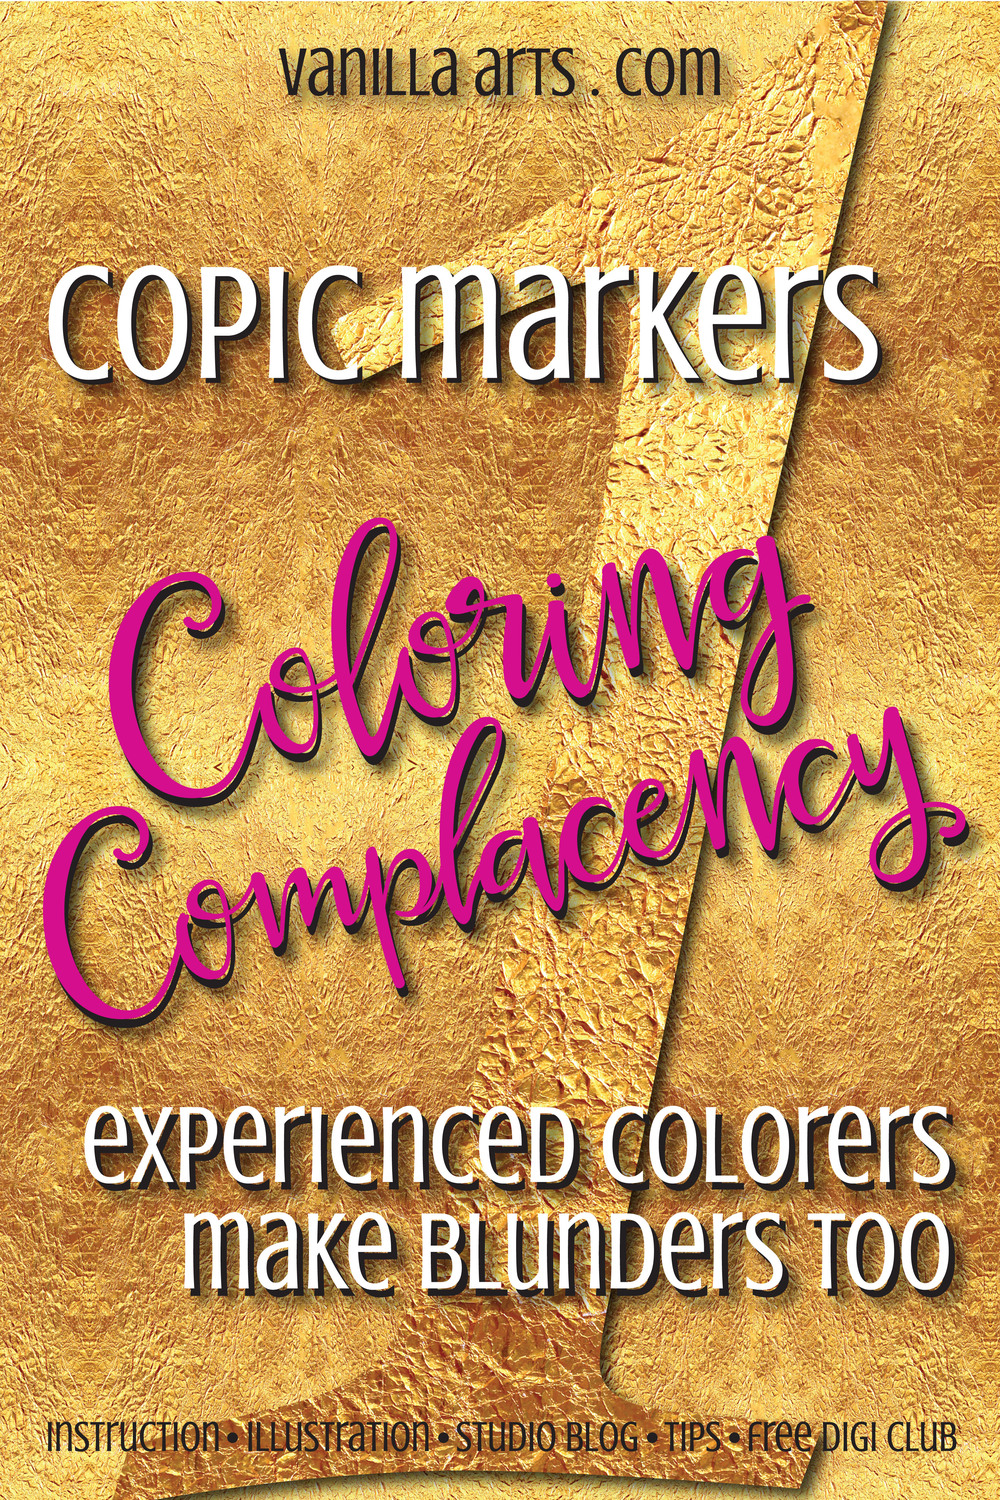 A look at mistakes common to experienced Copic colorers. Blunder #1- using too many markers. | VanillaArts.com